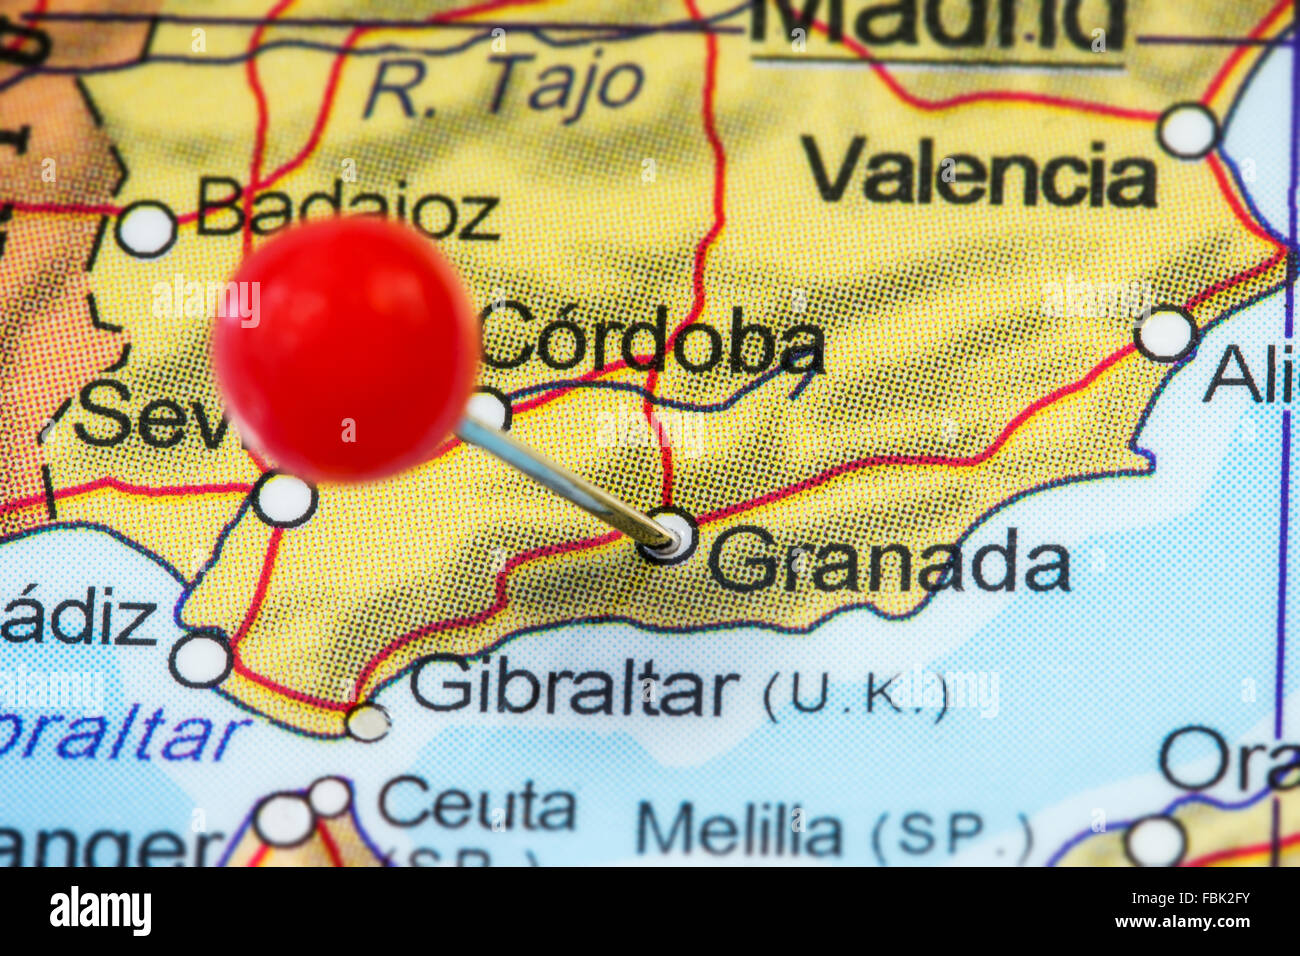 Map Of Spain Granada.Close Up Of A Red Pushpin In A Map Of Granada Spain Stock Photo